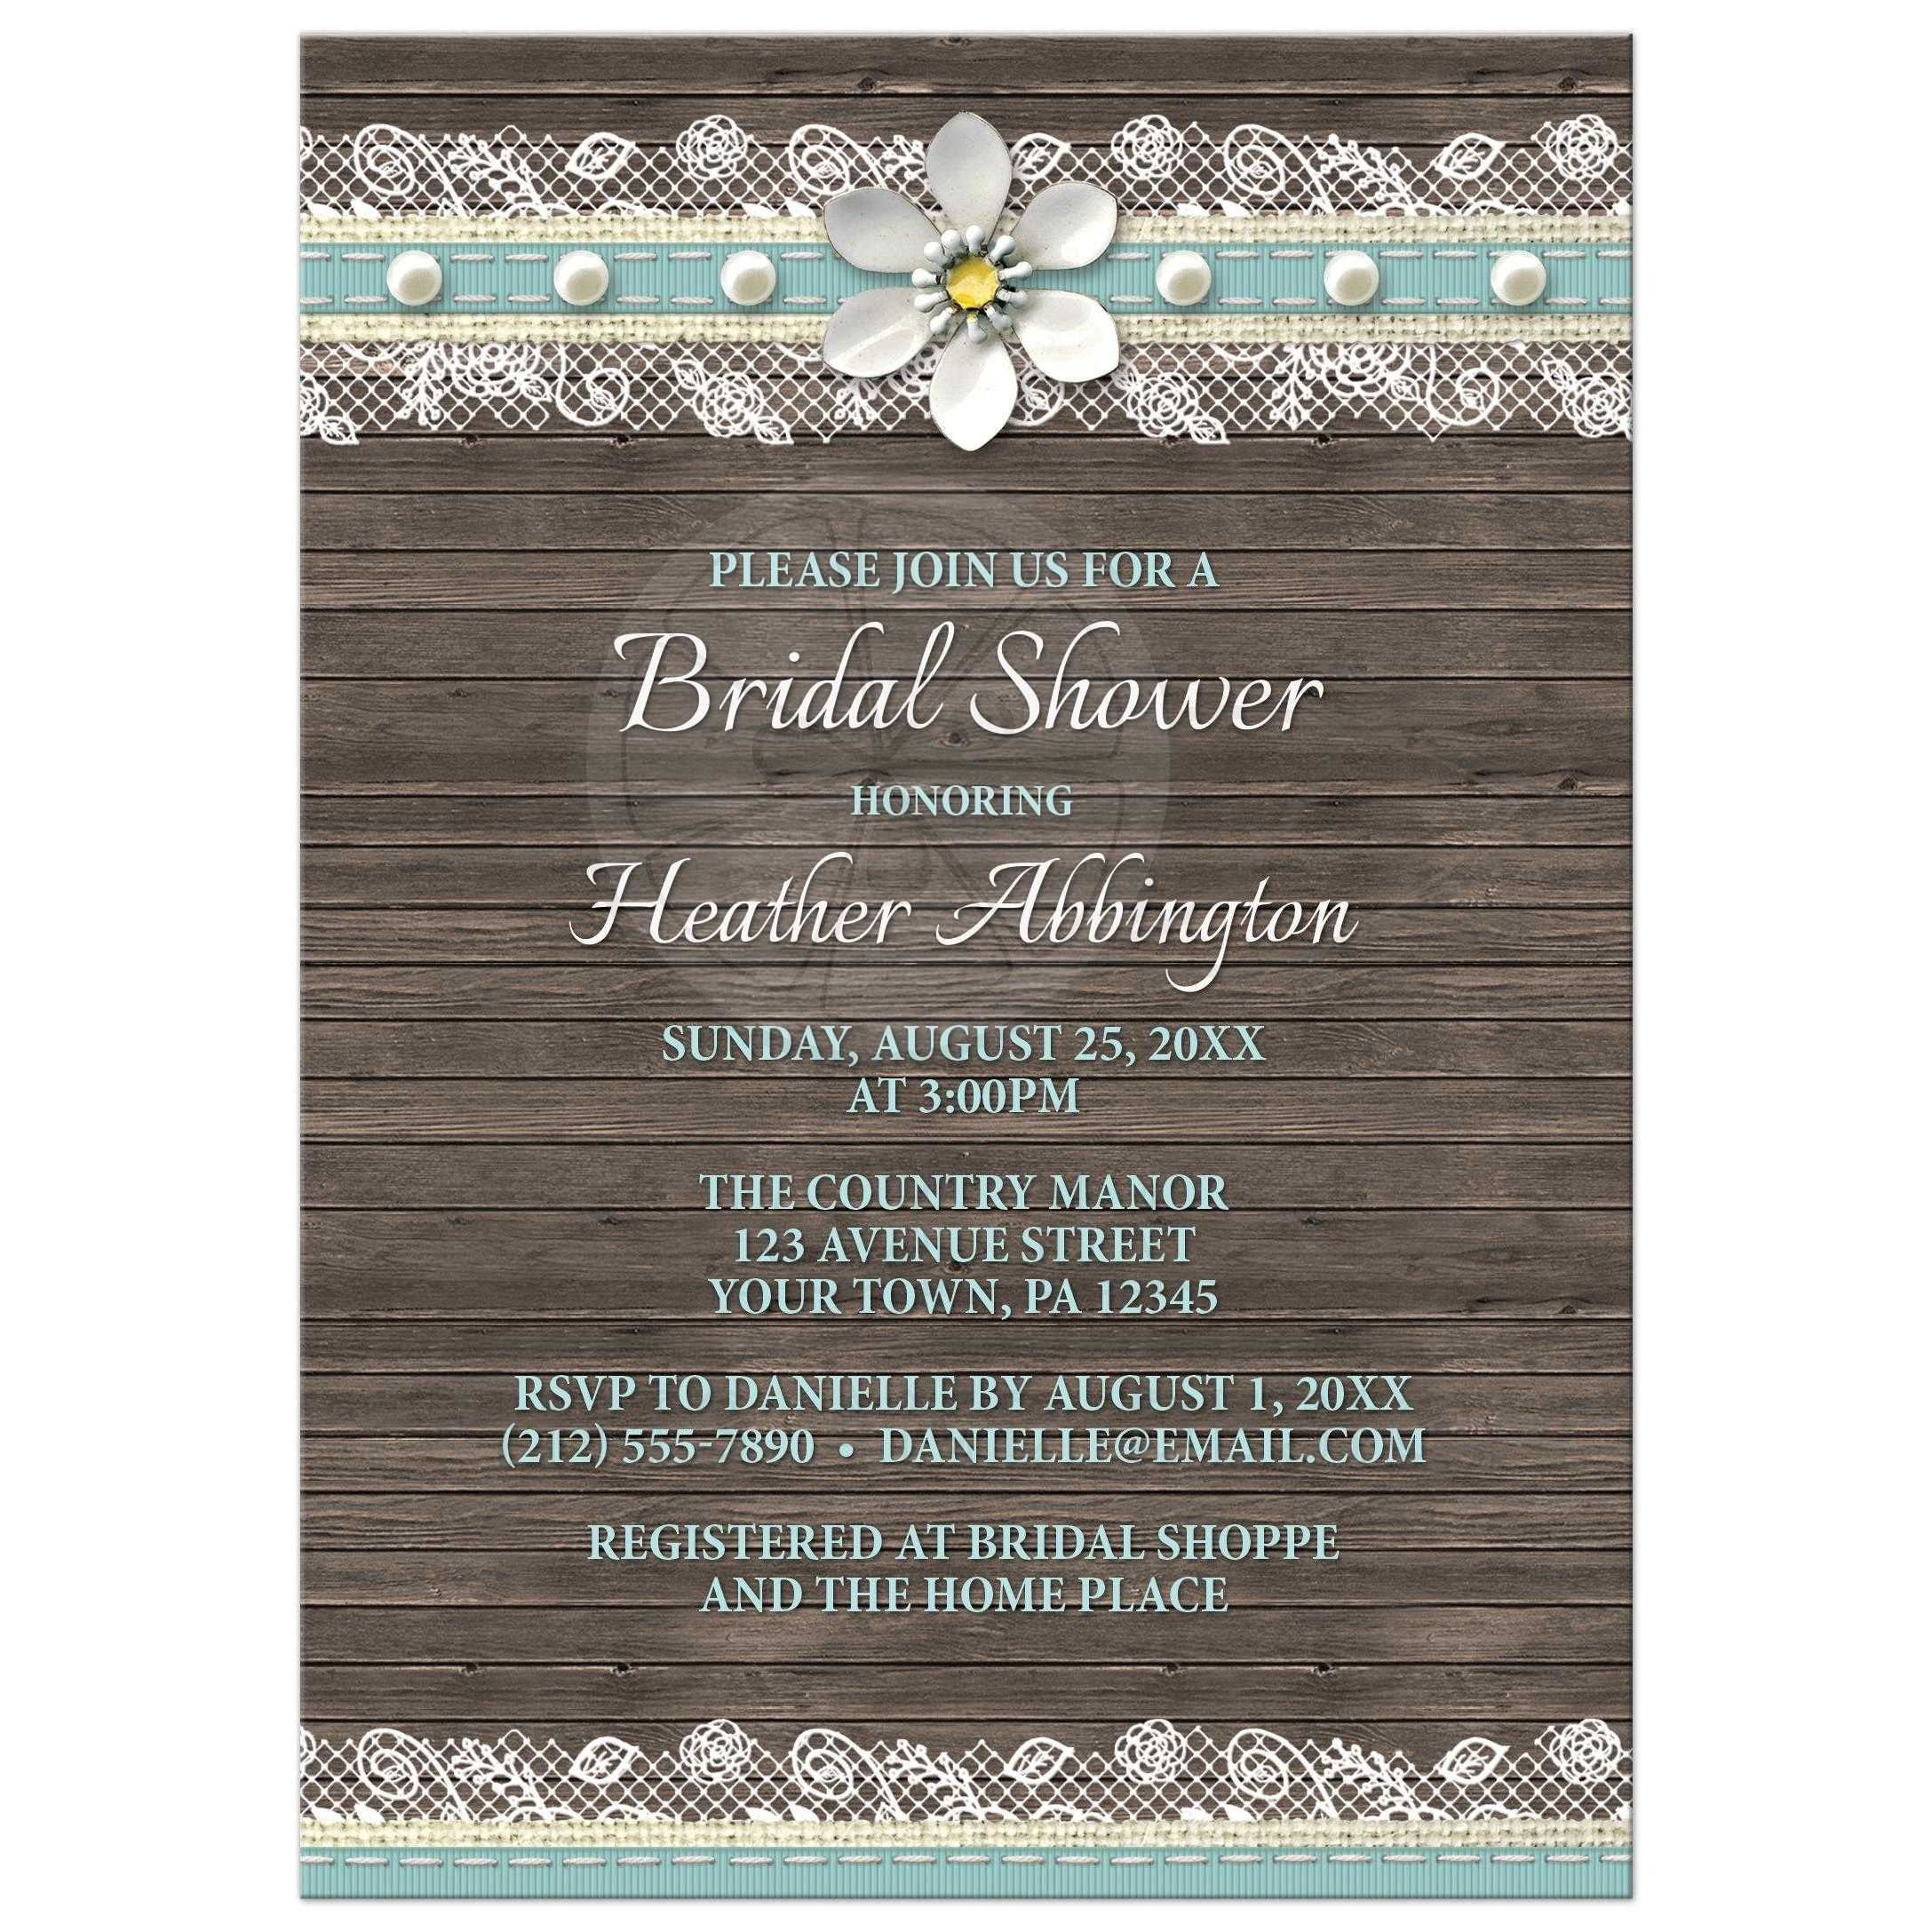 Bridal Shower Invitations Wood And Lace Turquoise